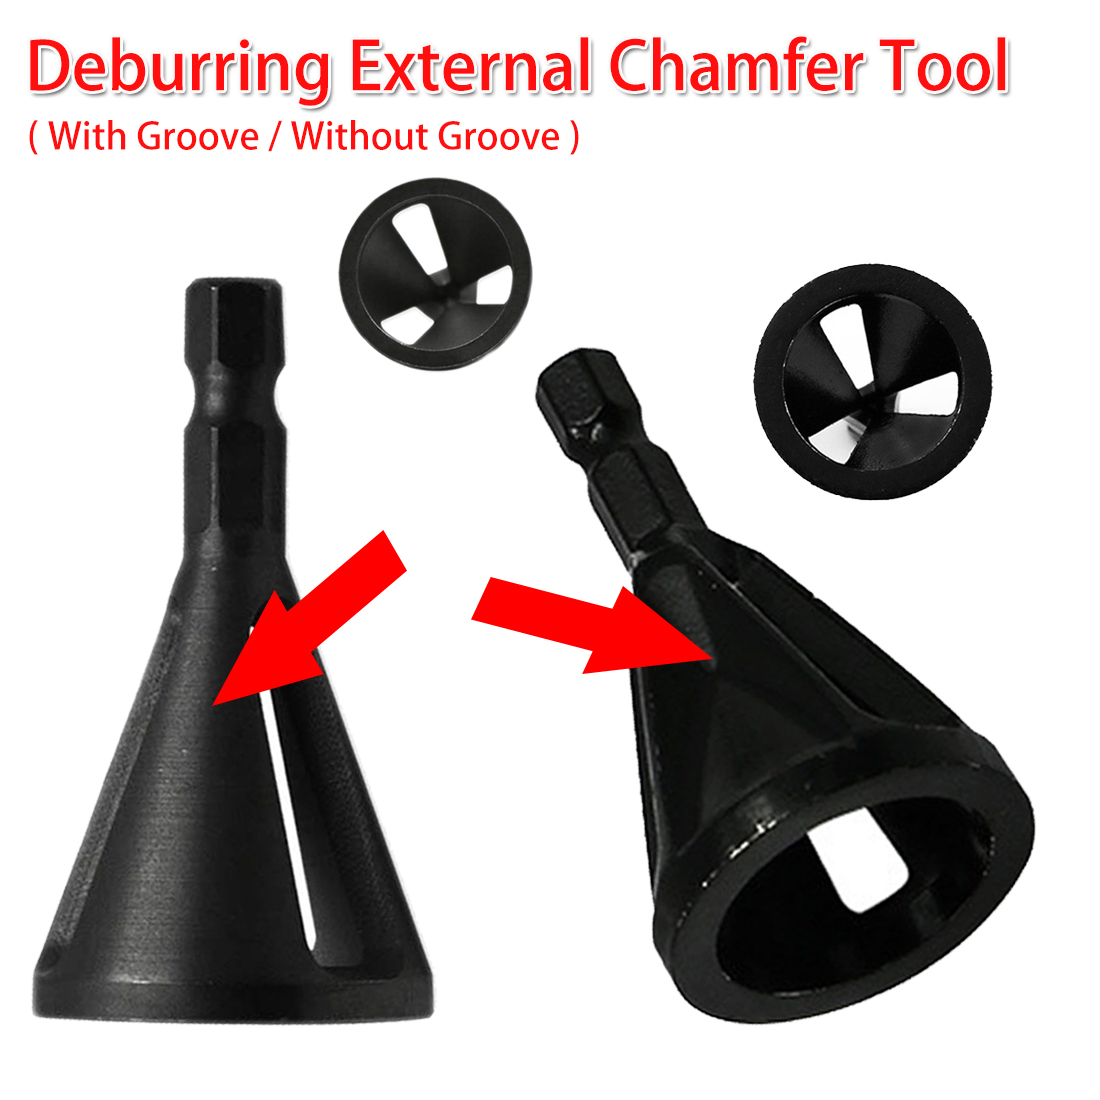 Steel Deburring External Chamfer Tool Drill Bit Remove Burr Tire Repair Damaged Bolts Woodworking 1/4 Shank 4-19mm Work Range